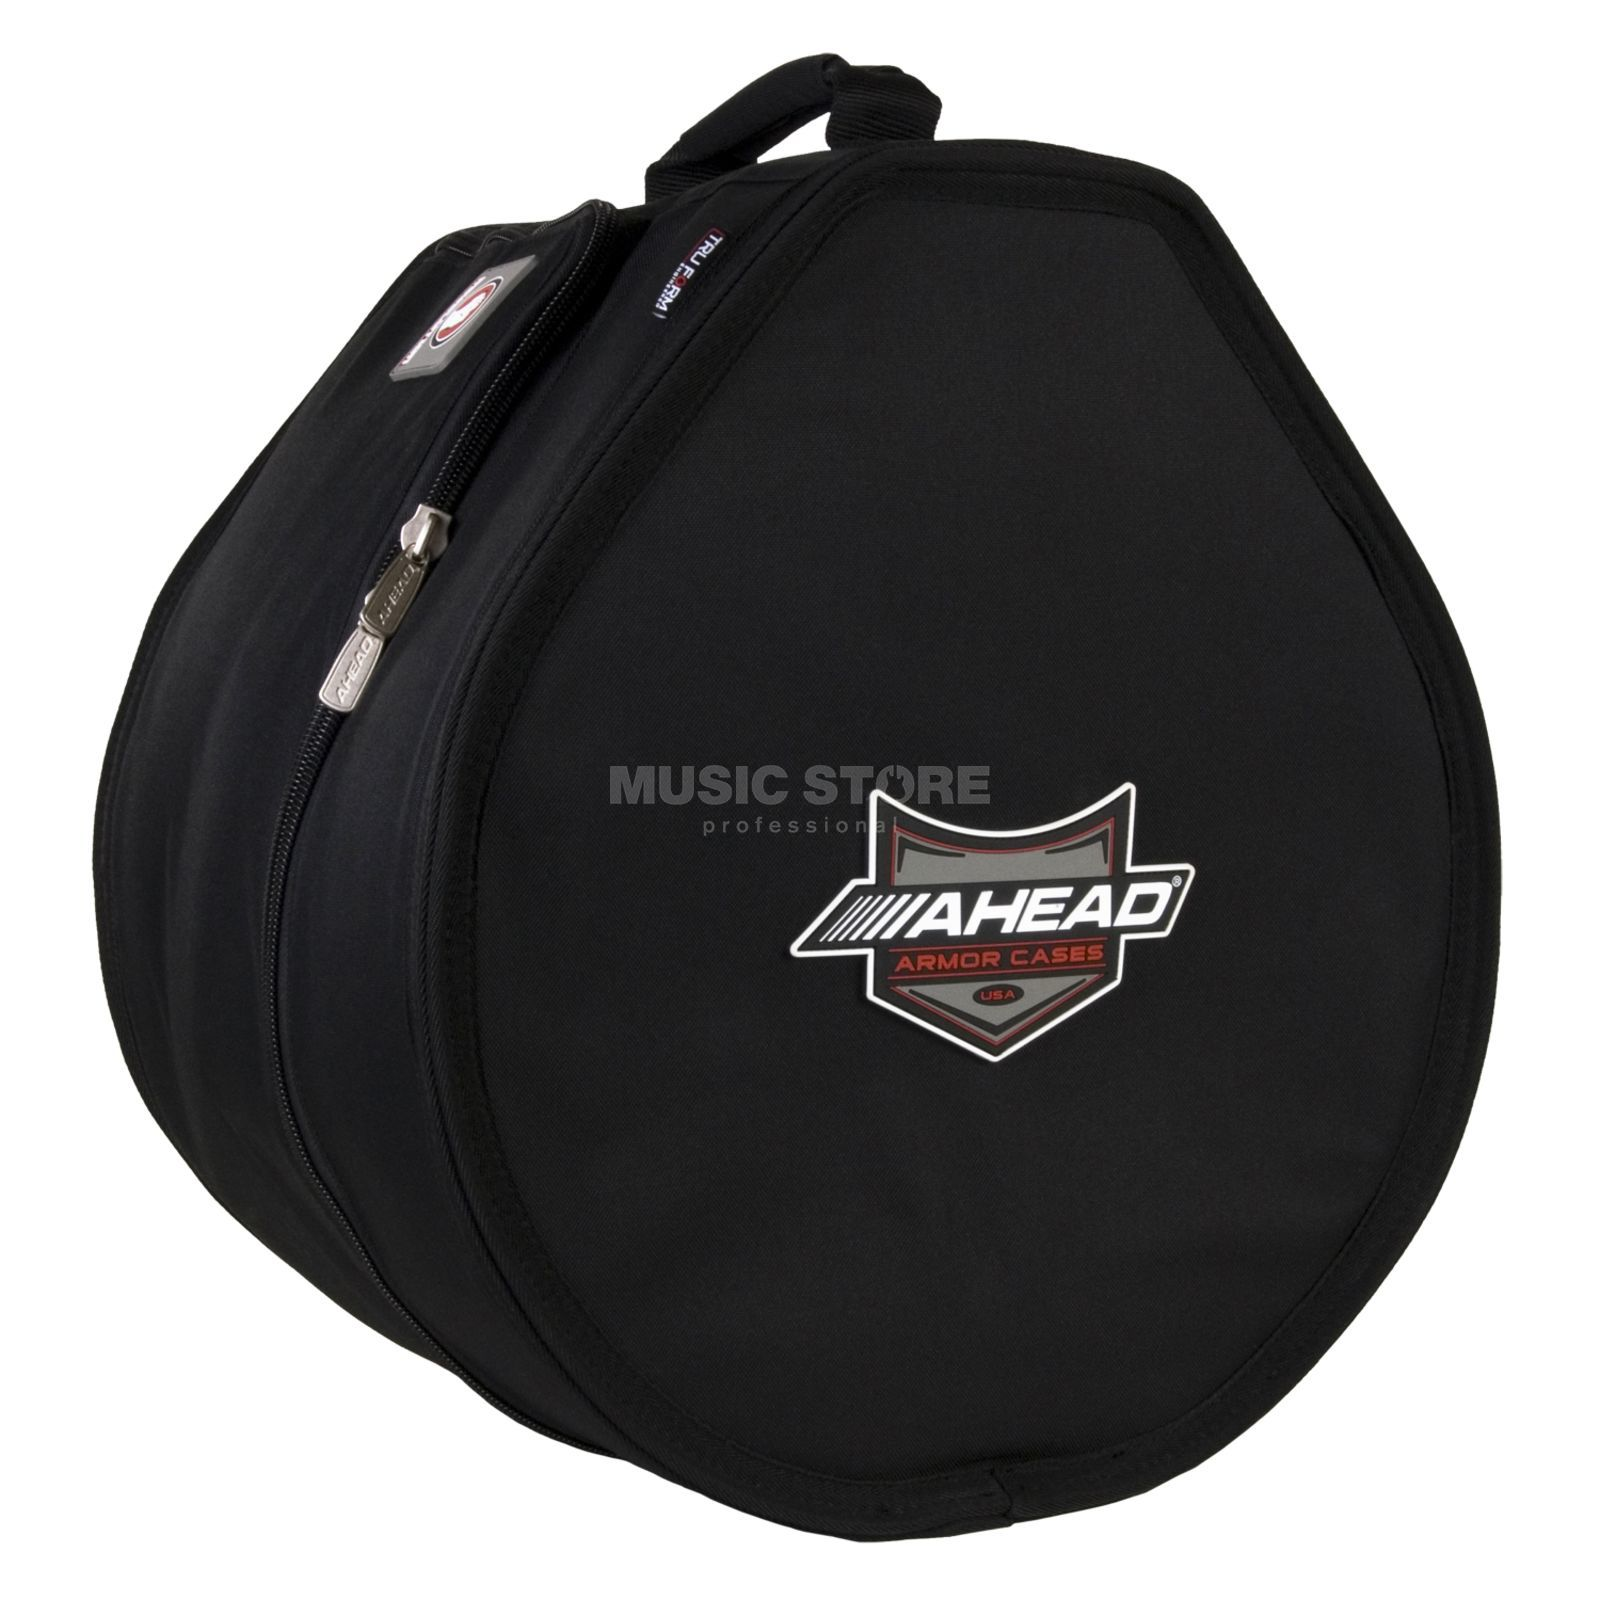 "Ahead Armor Cases Tom Bag 12""x9""  Produktbild"